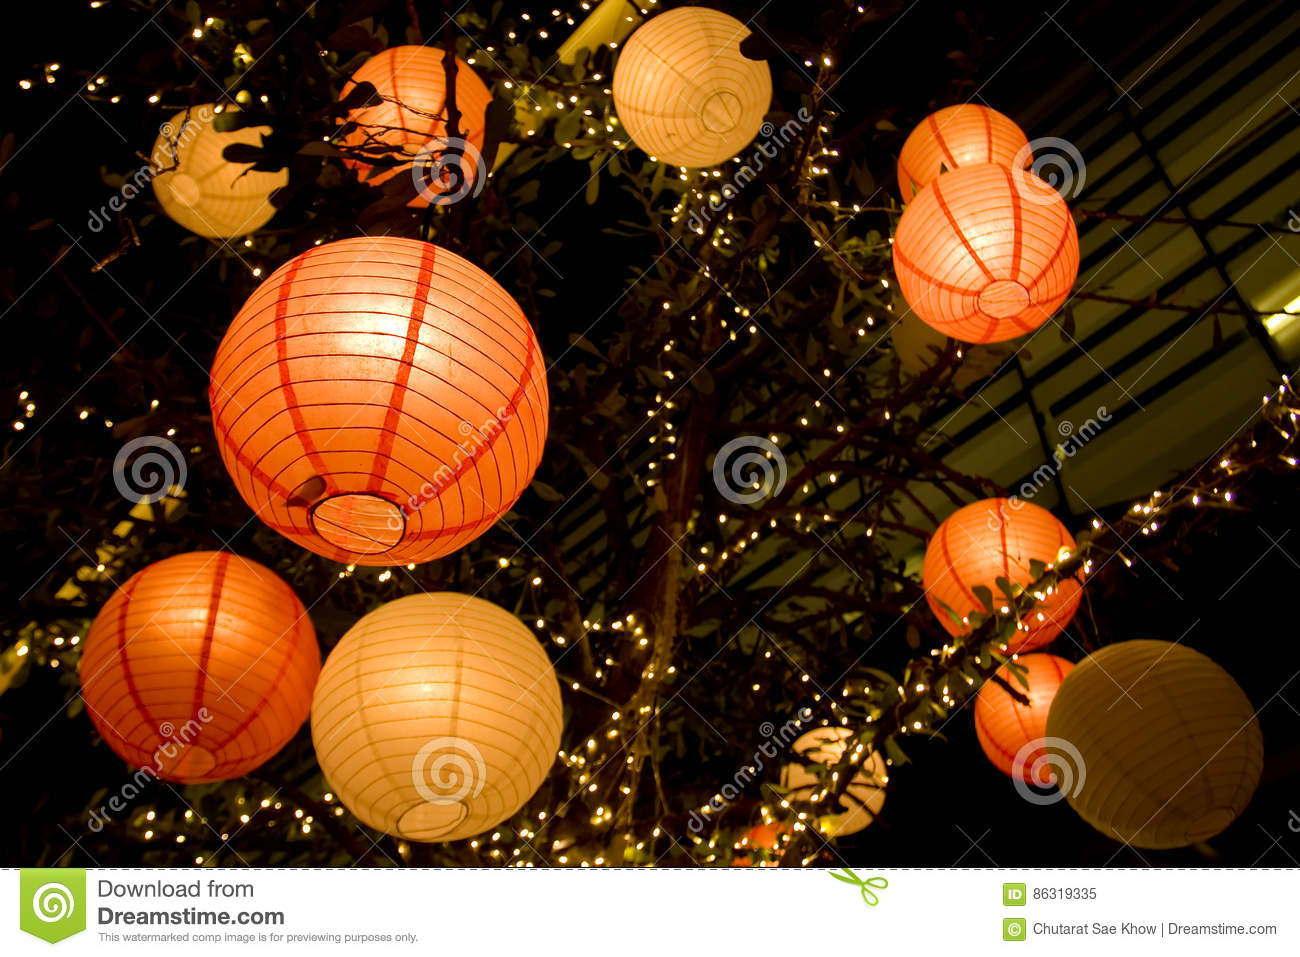 Romantic Japanese Paper Lantern Stock Image - Image of hanging